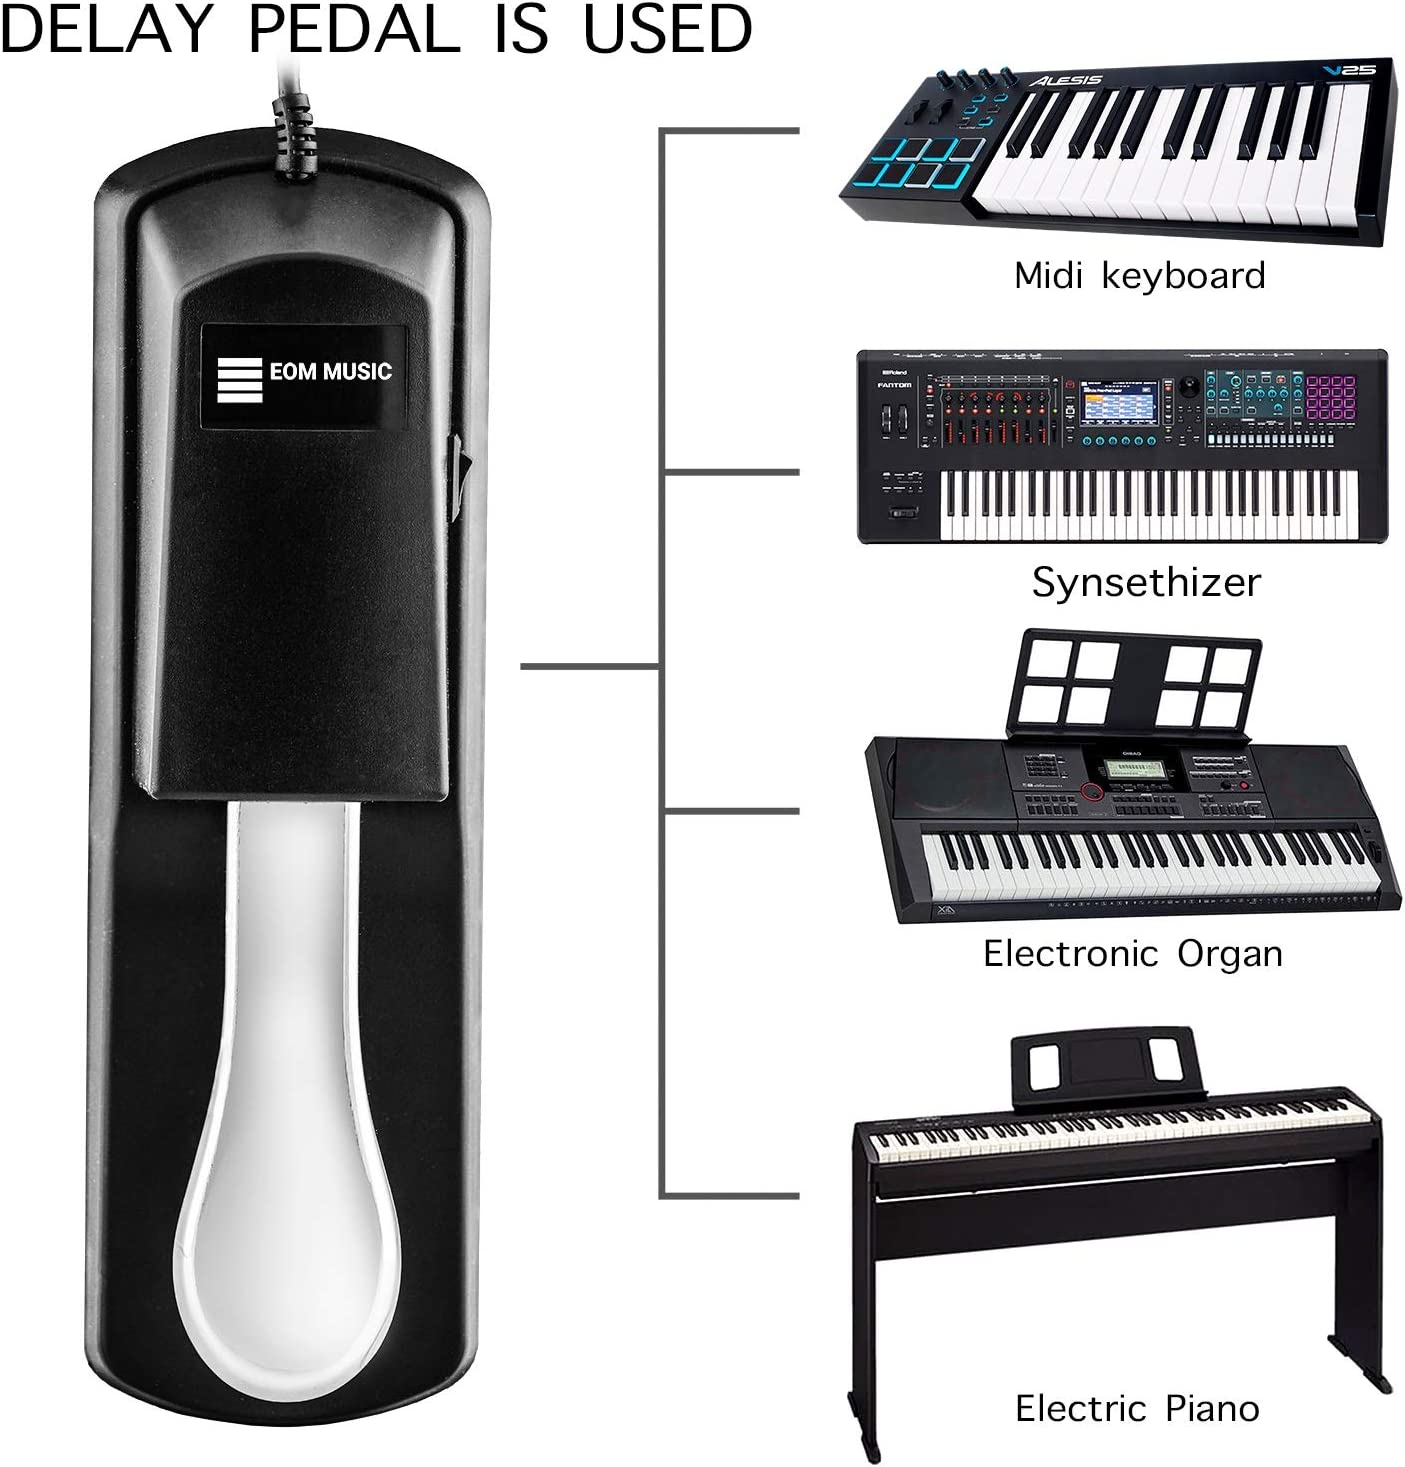 and Digital Piano with Polarity Switch-5 Foot Cable with 1//4Jack EOM MUSIC Universal Keyboard Sustain Pedal with Precision Action for Half Pedal Techniques-Versatile Sustain Pedal for Keyboard Midi